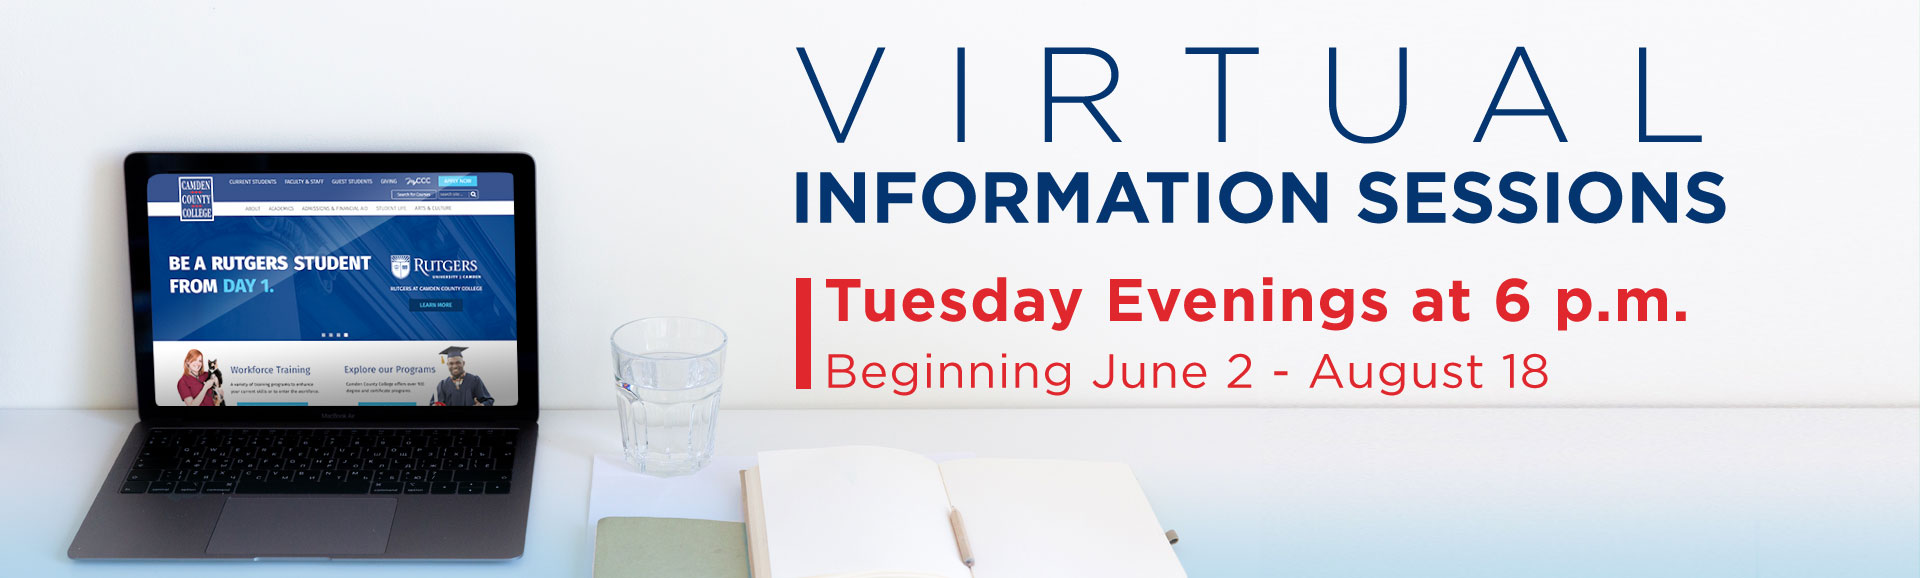 Virtual Info Sessions Tuesday Evenings at 6 PM